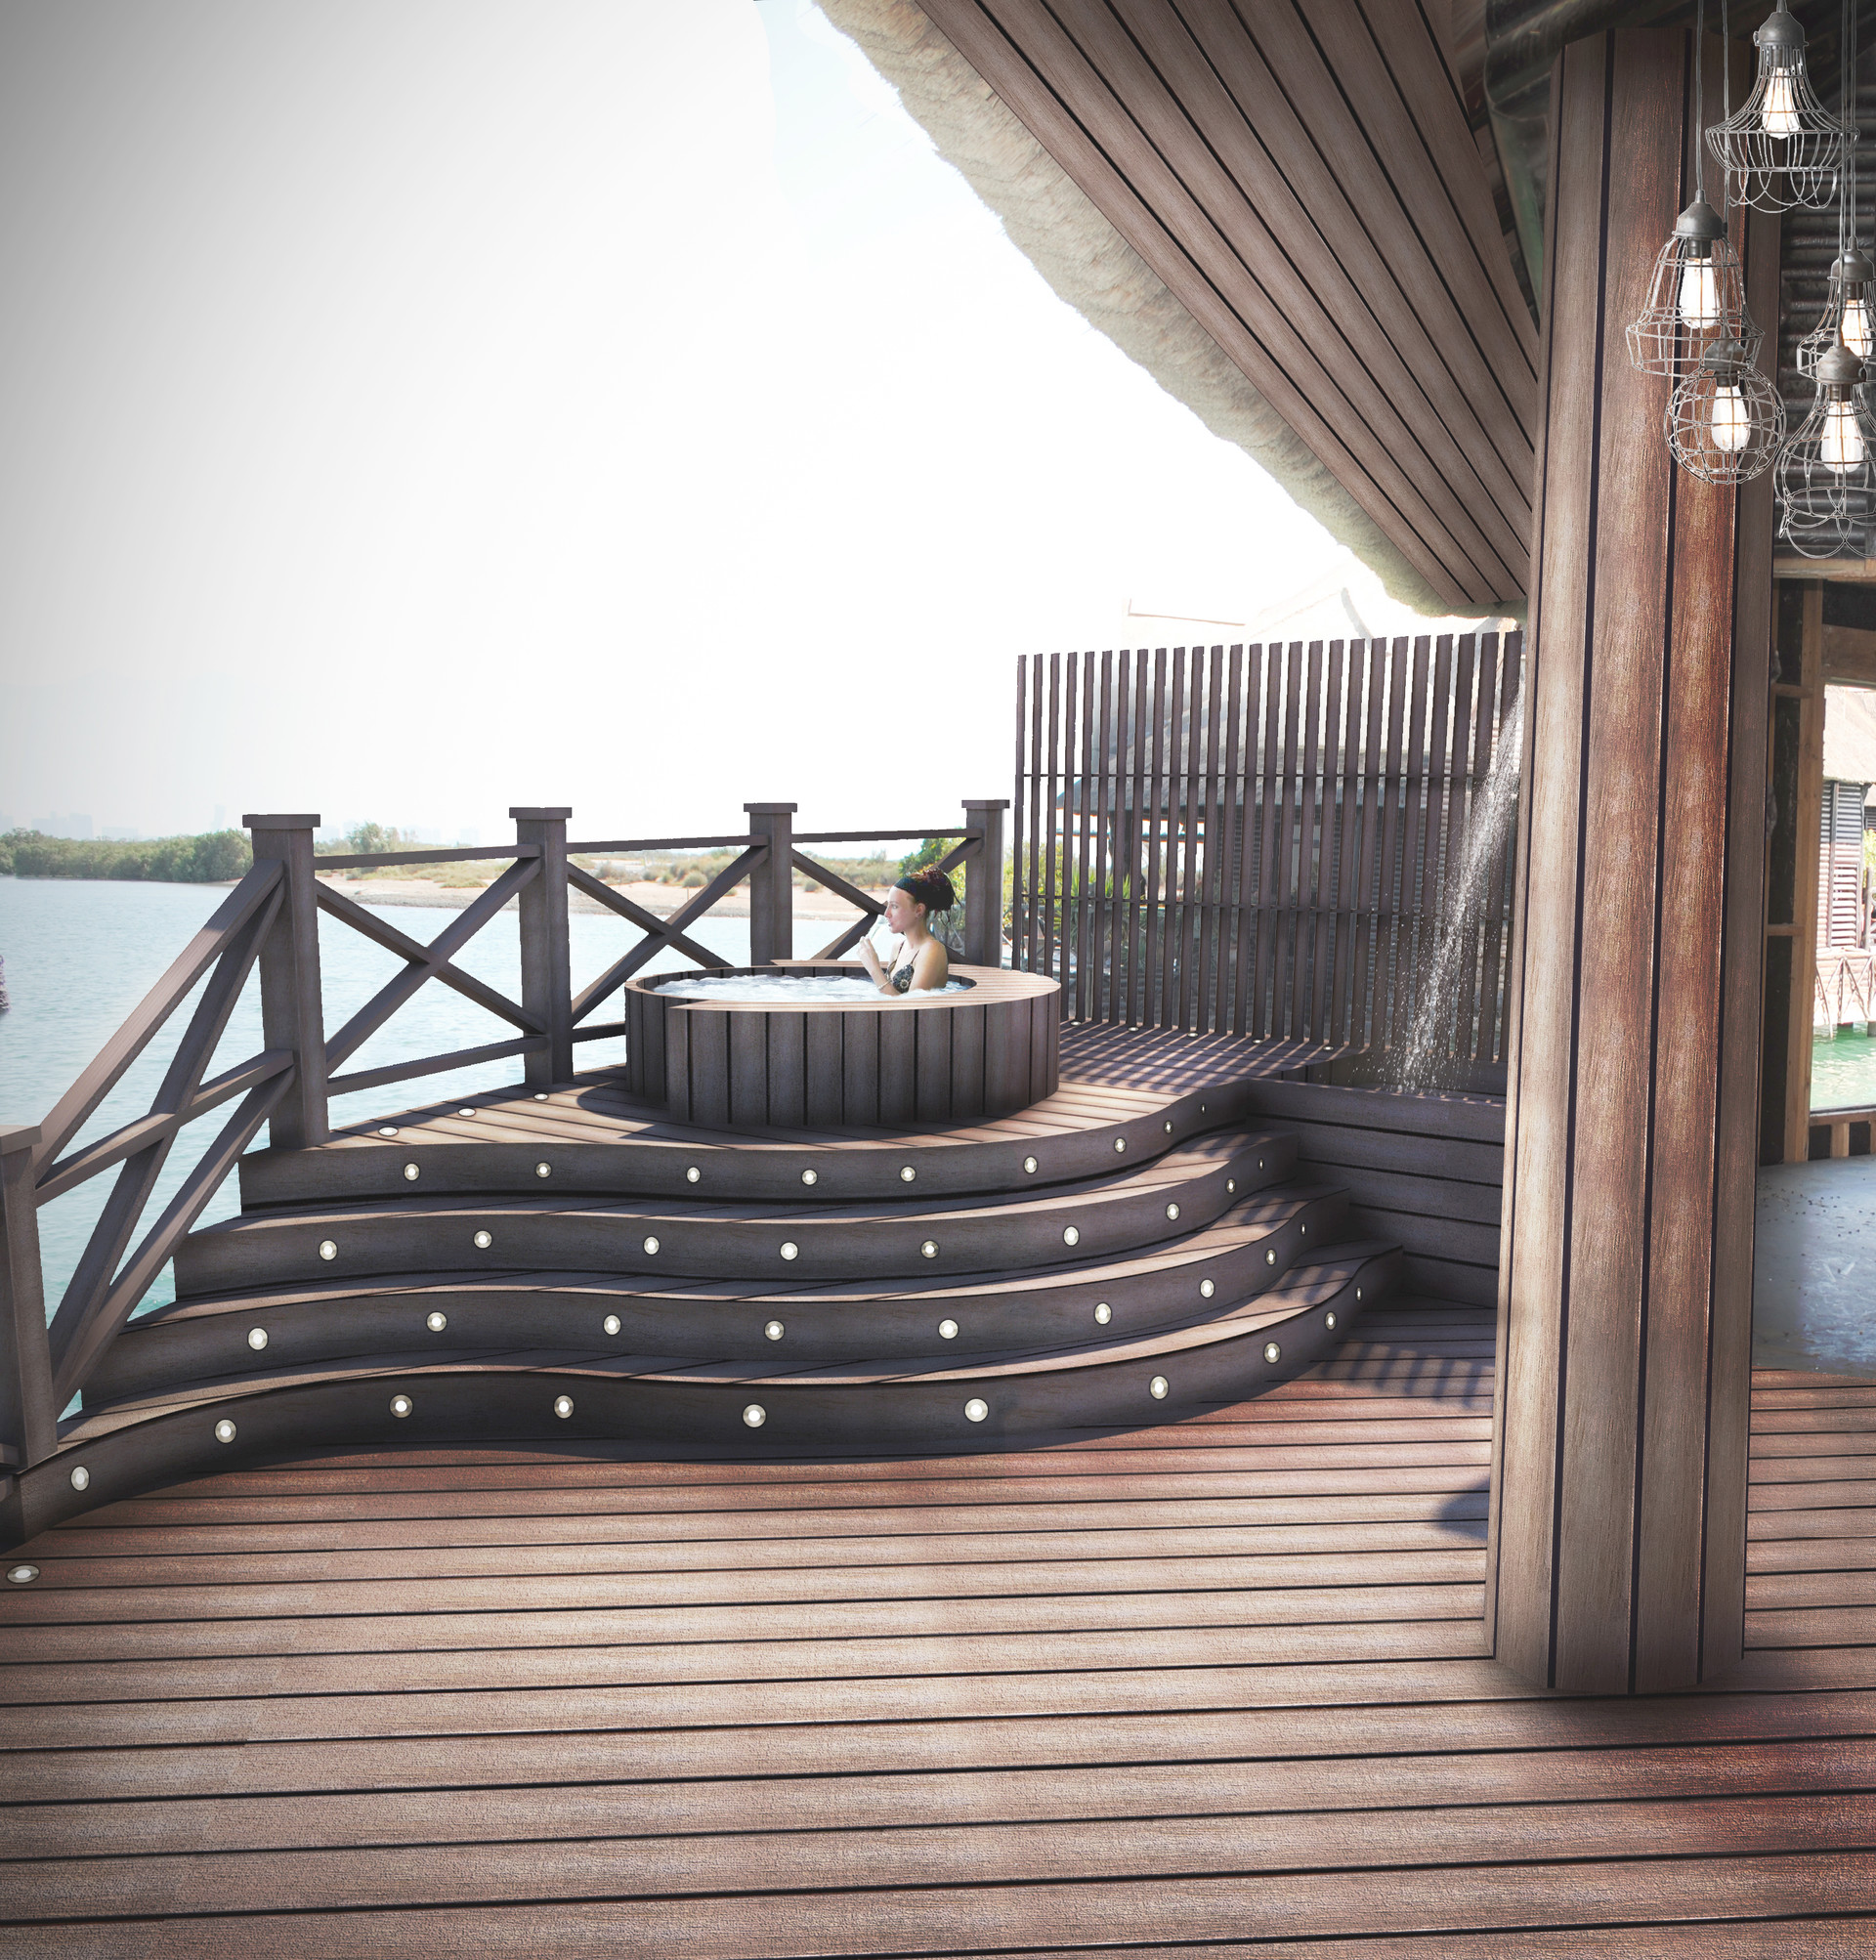 Manuel piedra decking area small